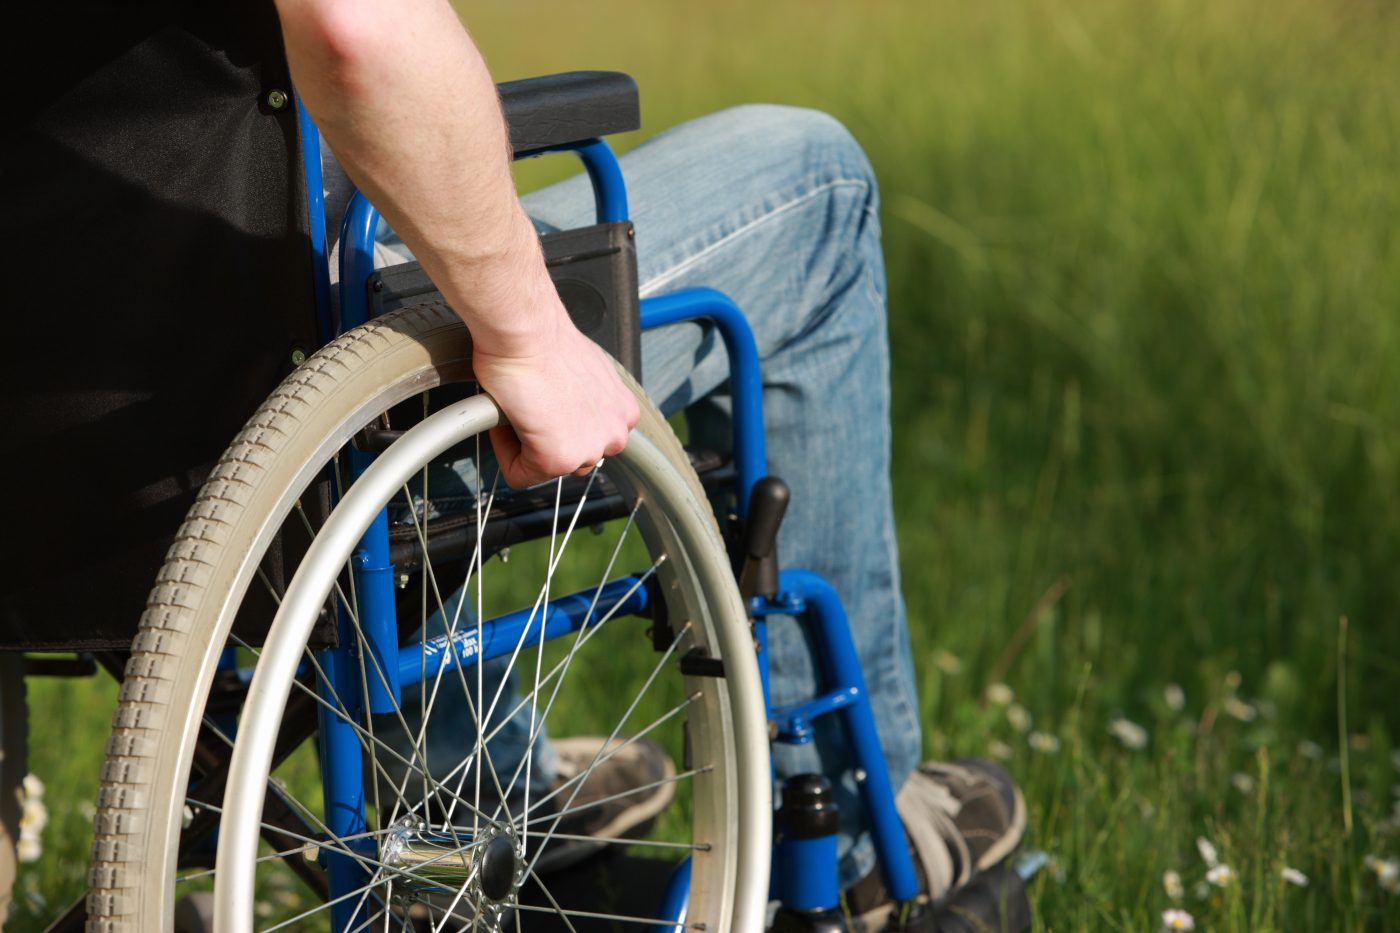 Serum Creatinine Levels Reflect Disease Severity in Muscular Dystrophy Patients